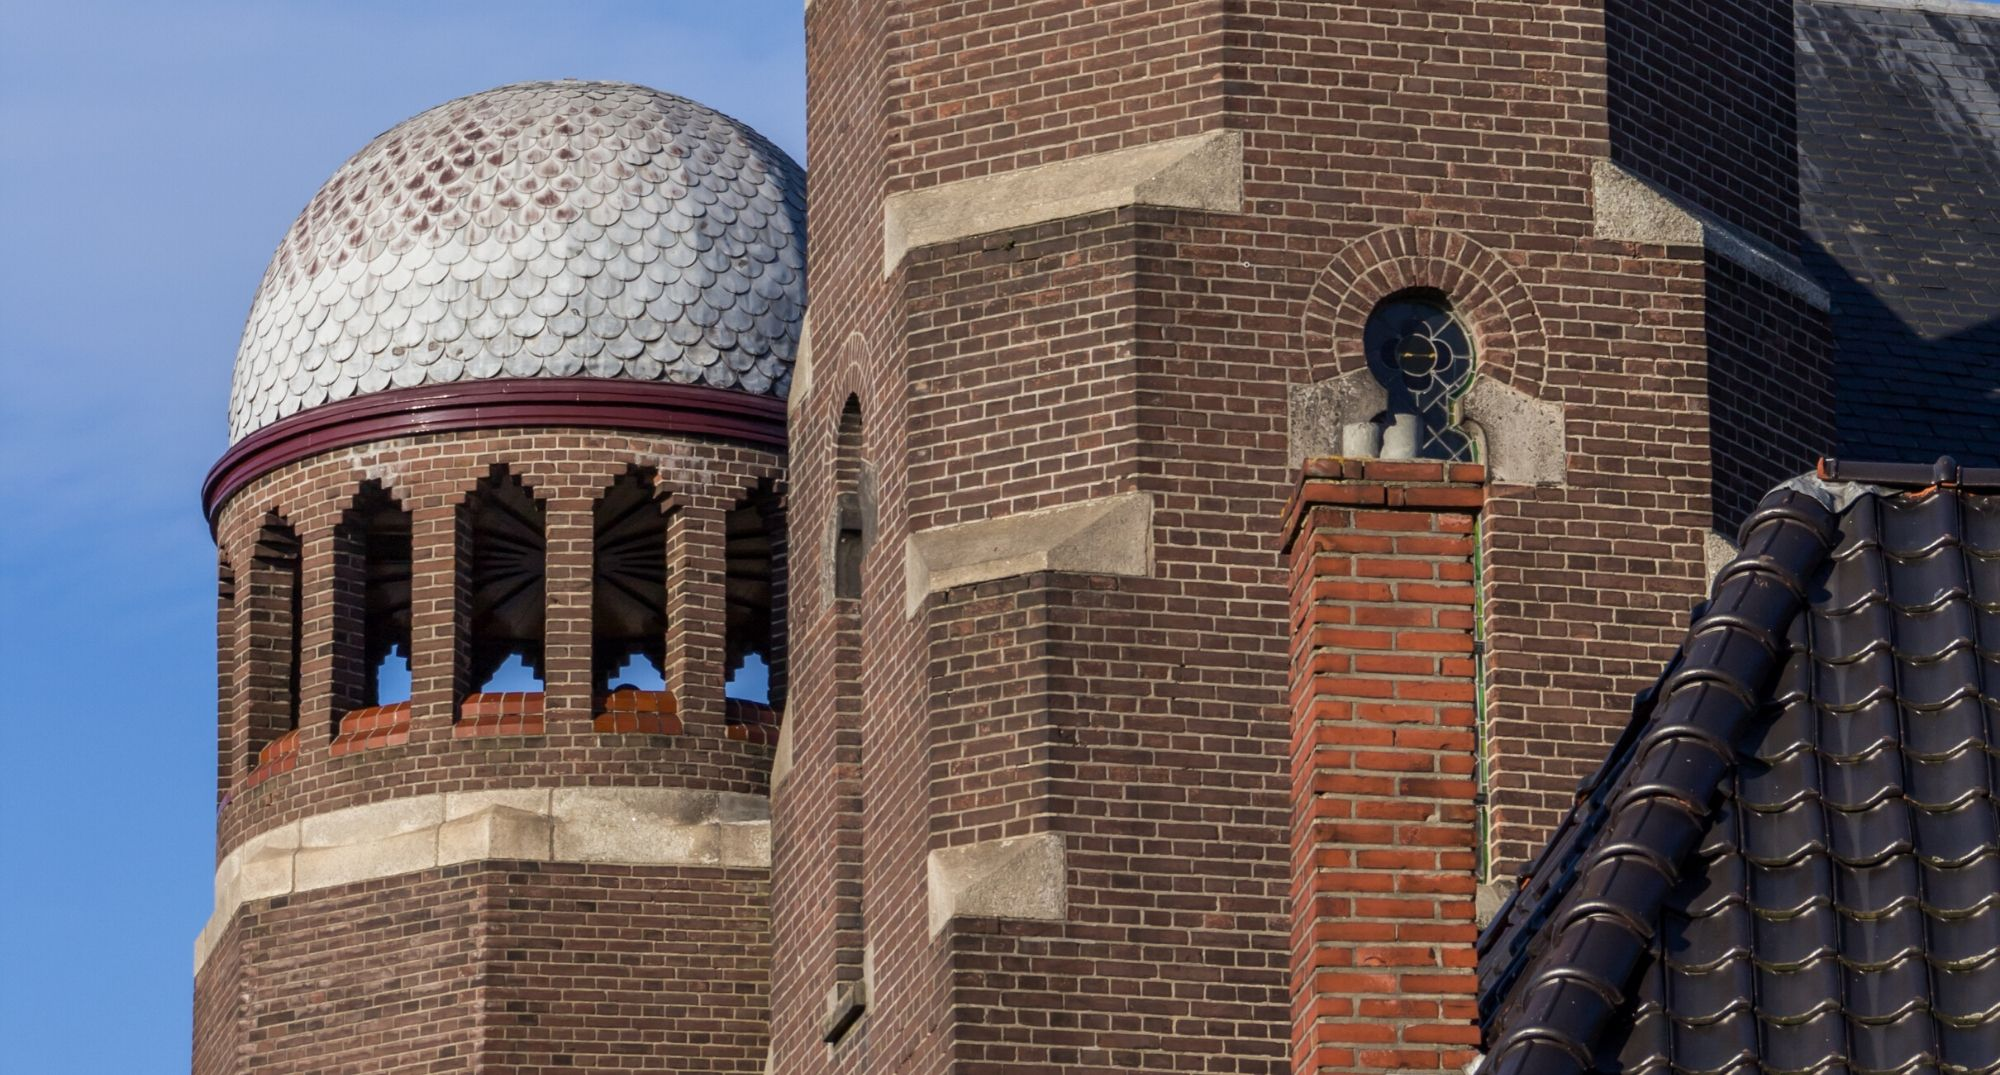 What to see in Groningen: Synagogue | Your Dutch Guide